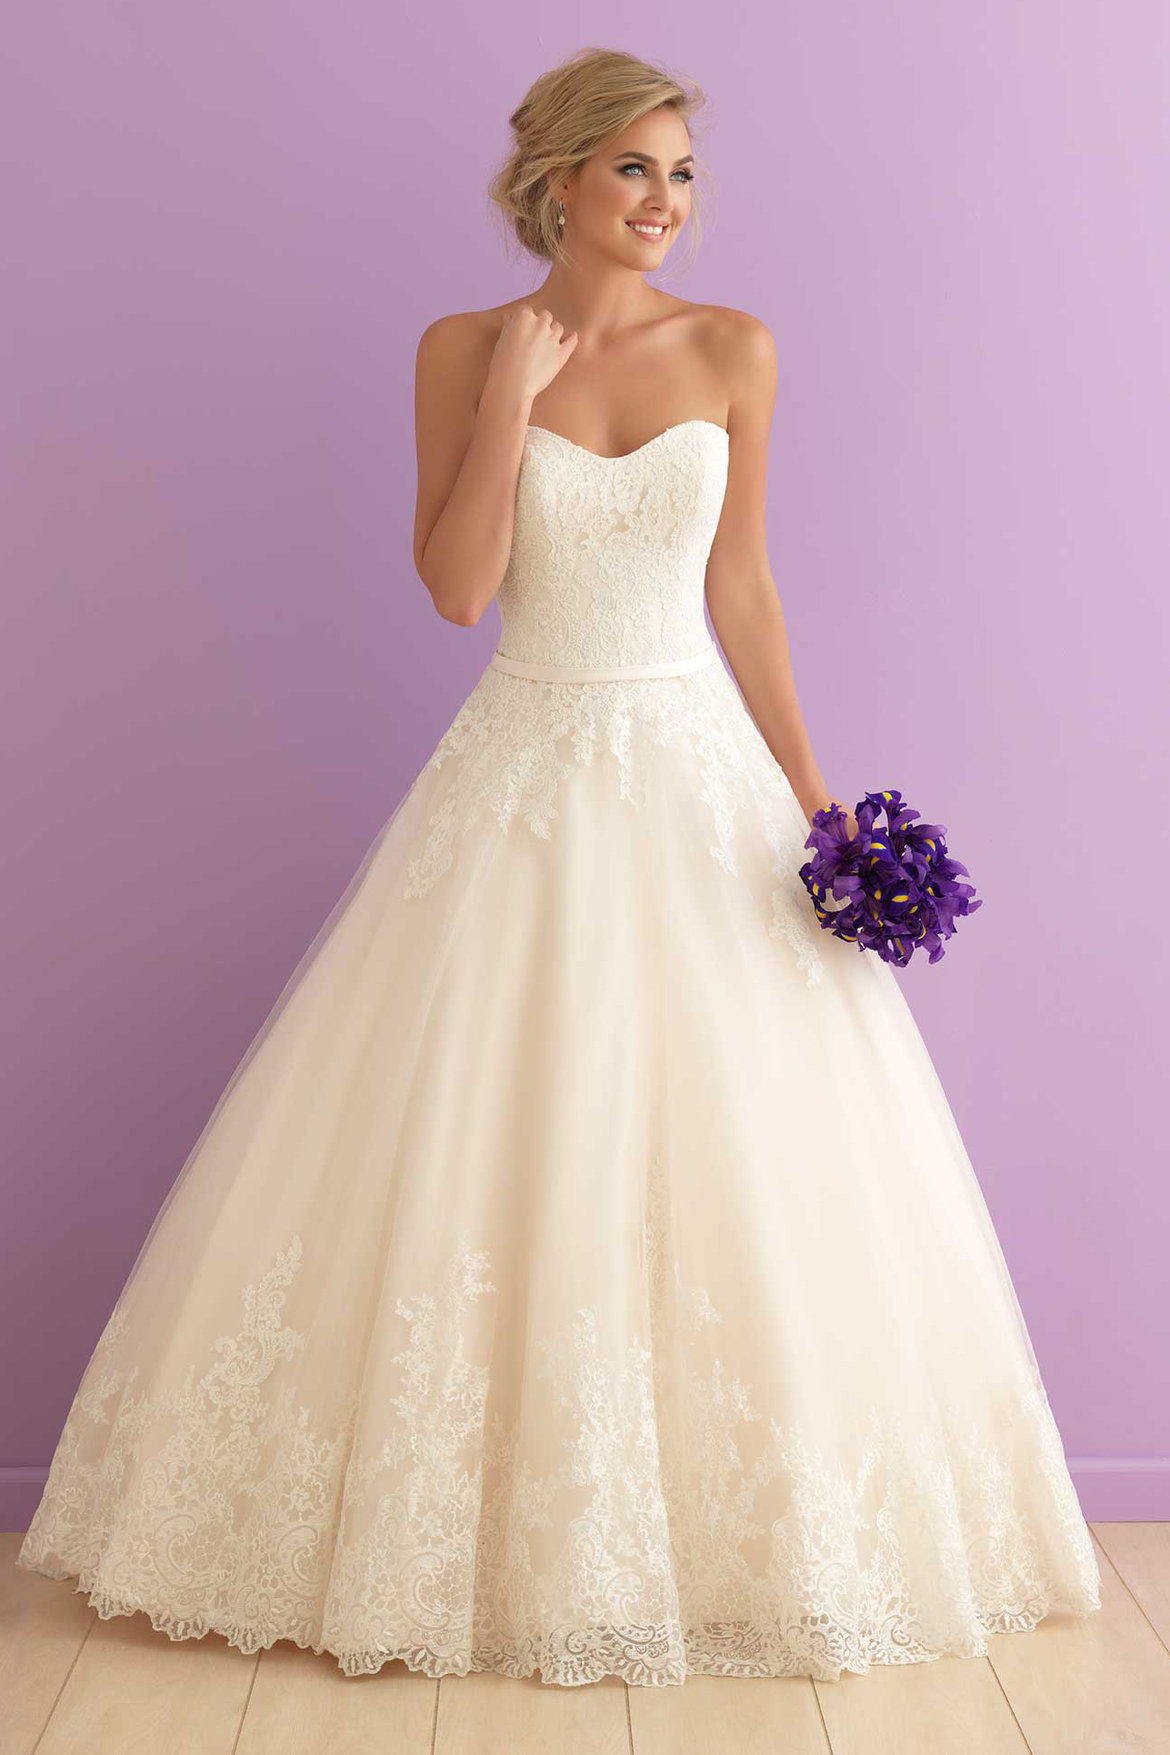 The 25 most popular wedding gowns of 2015 bridalguide for Dress of wedding style